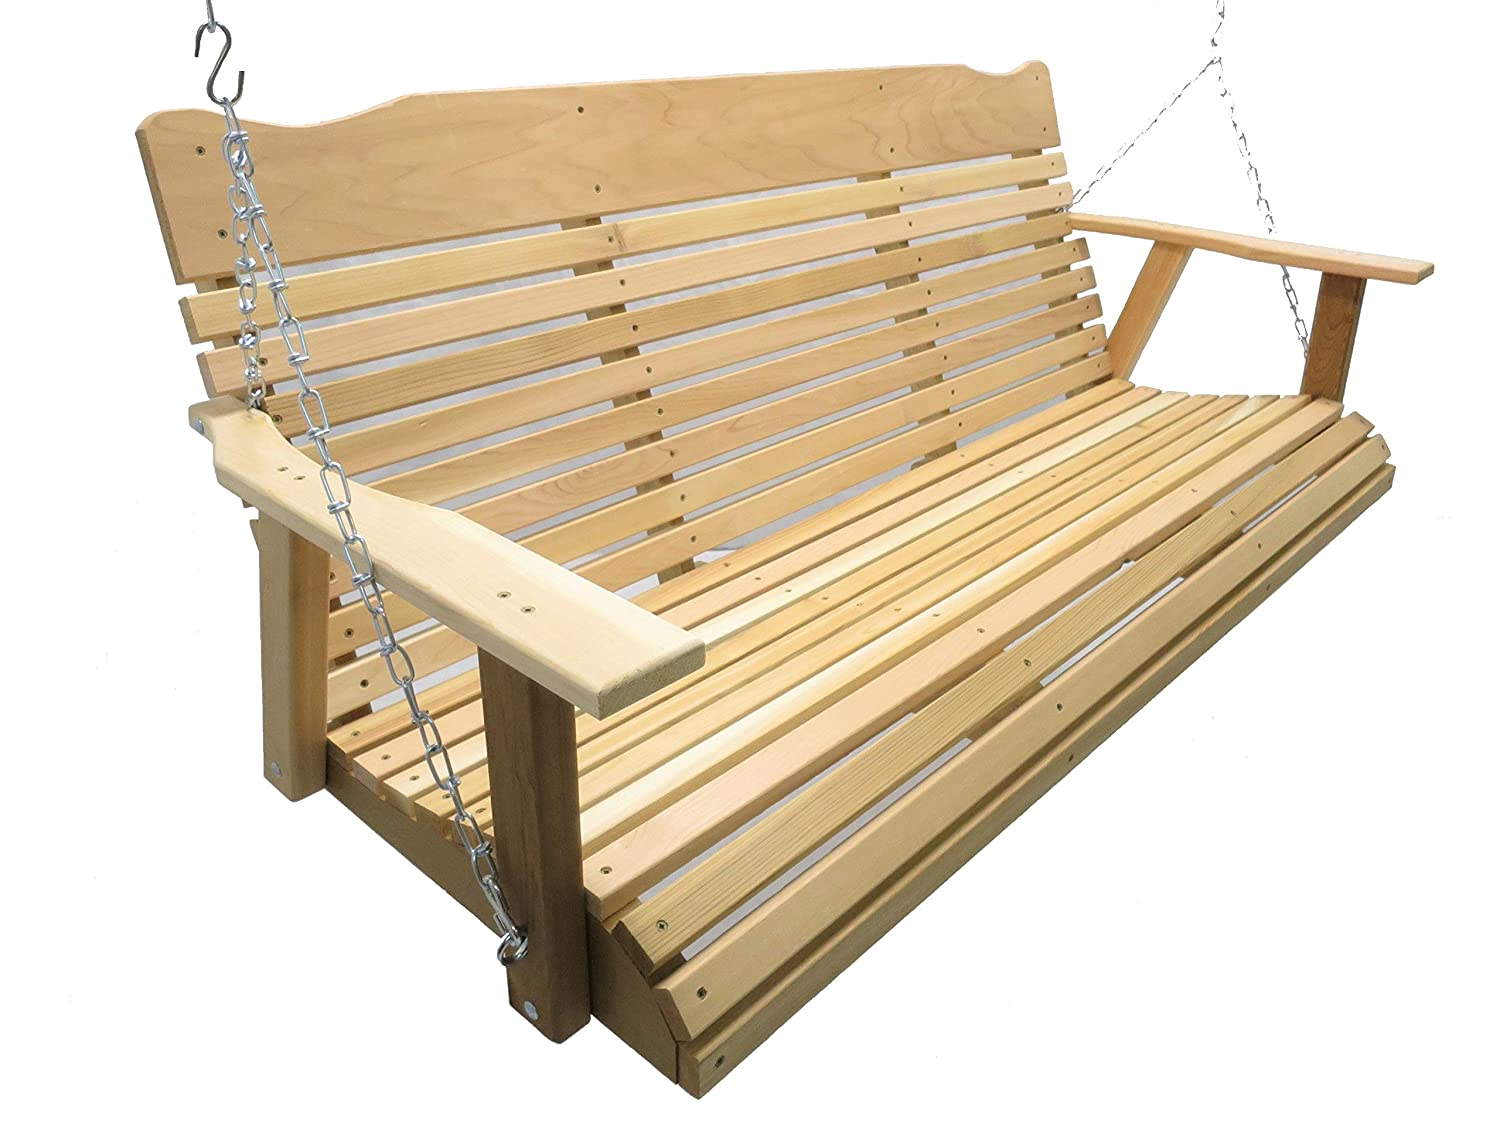 Kilmer Creek 5 Natural Cedar Porch Swing, Amish Crafted – Includes Chain Springs